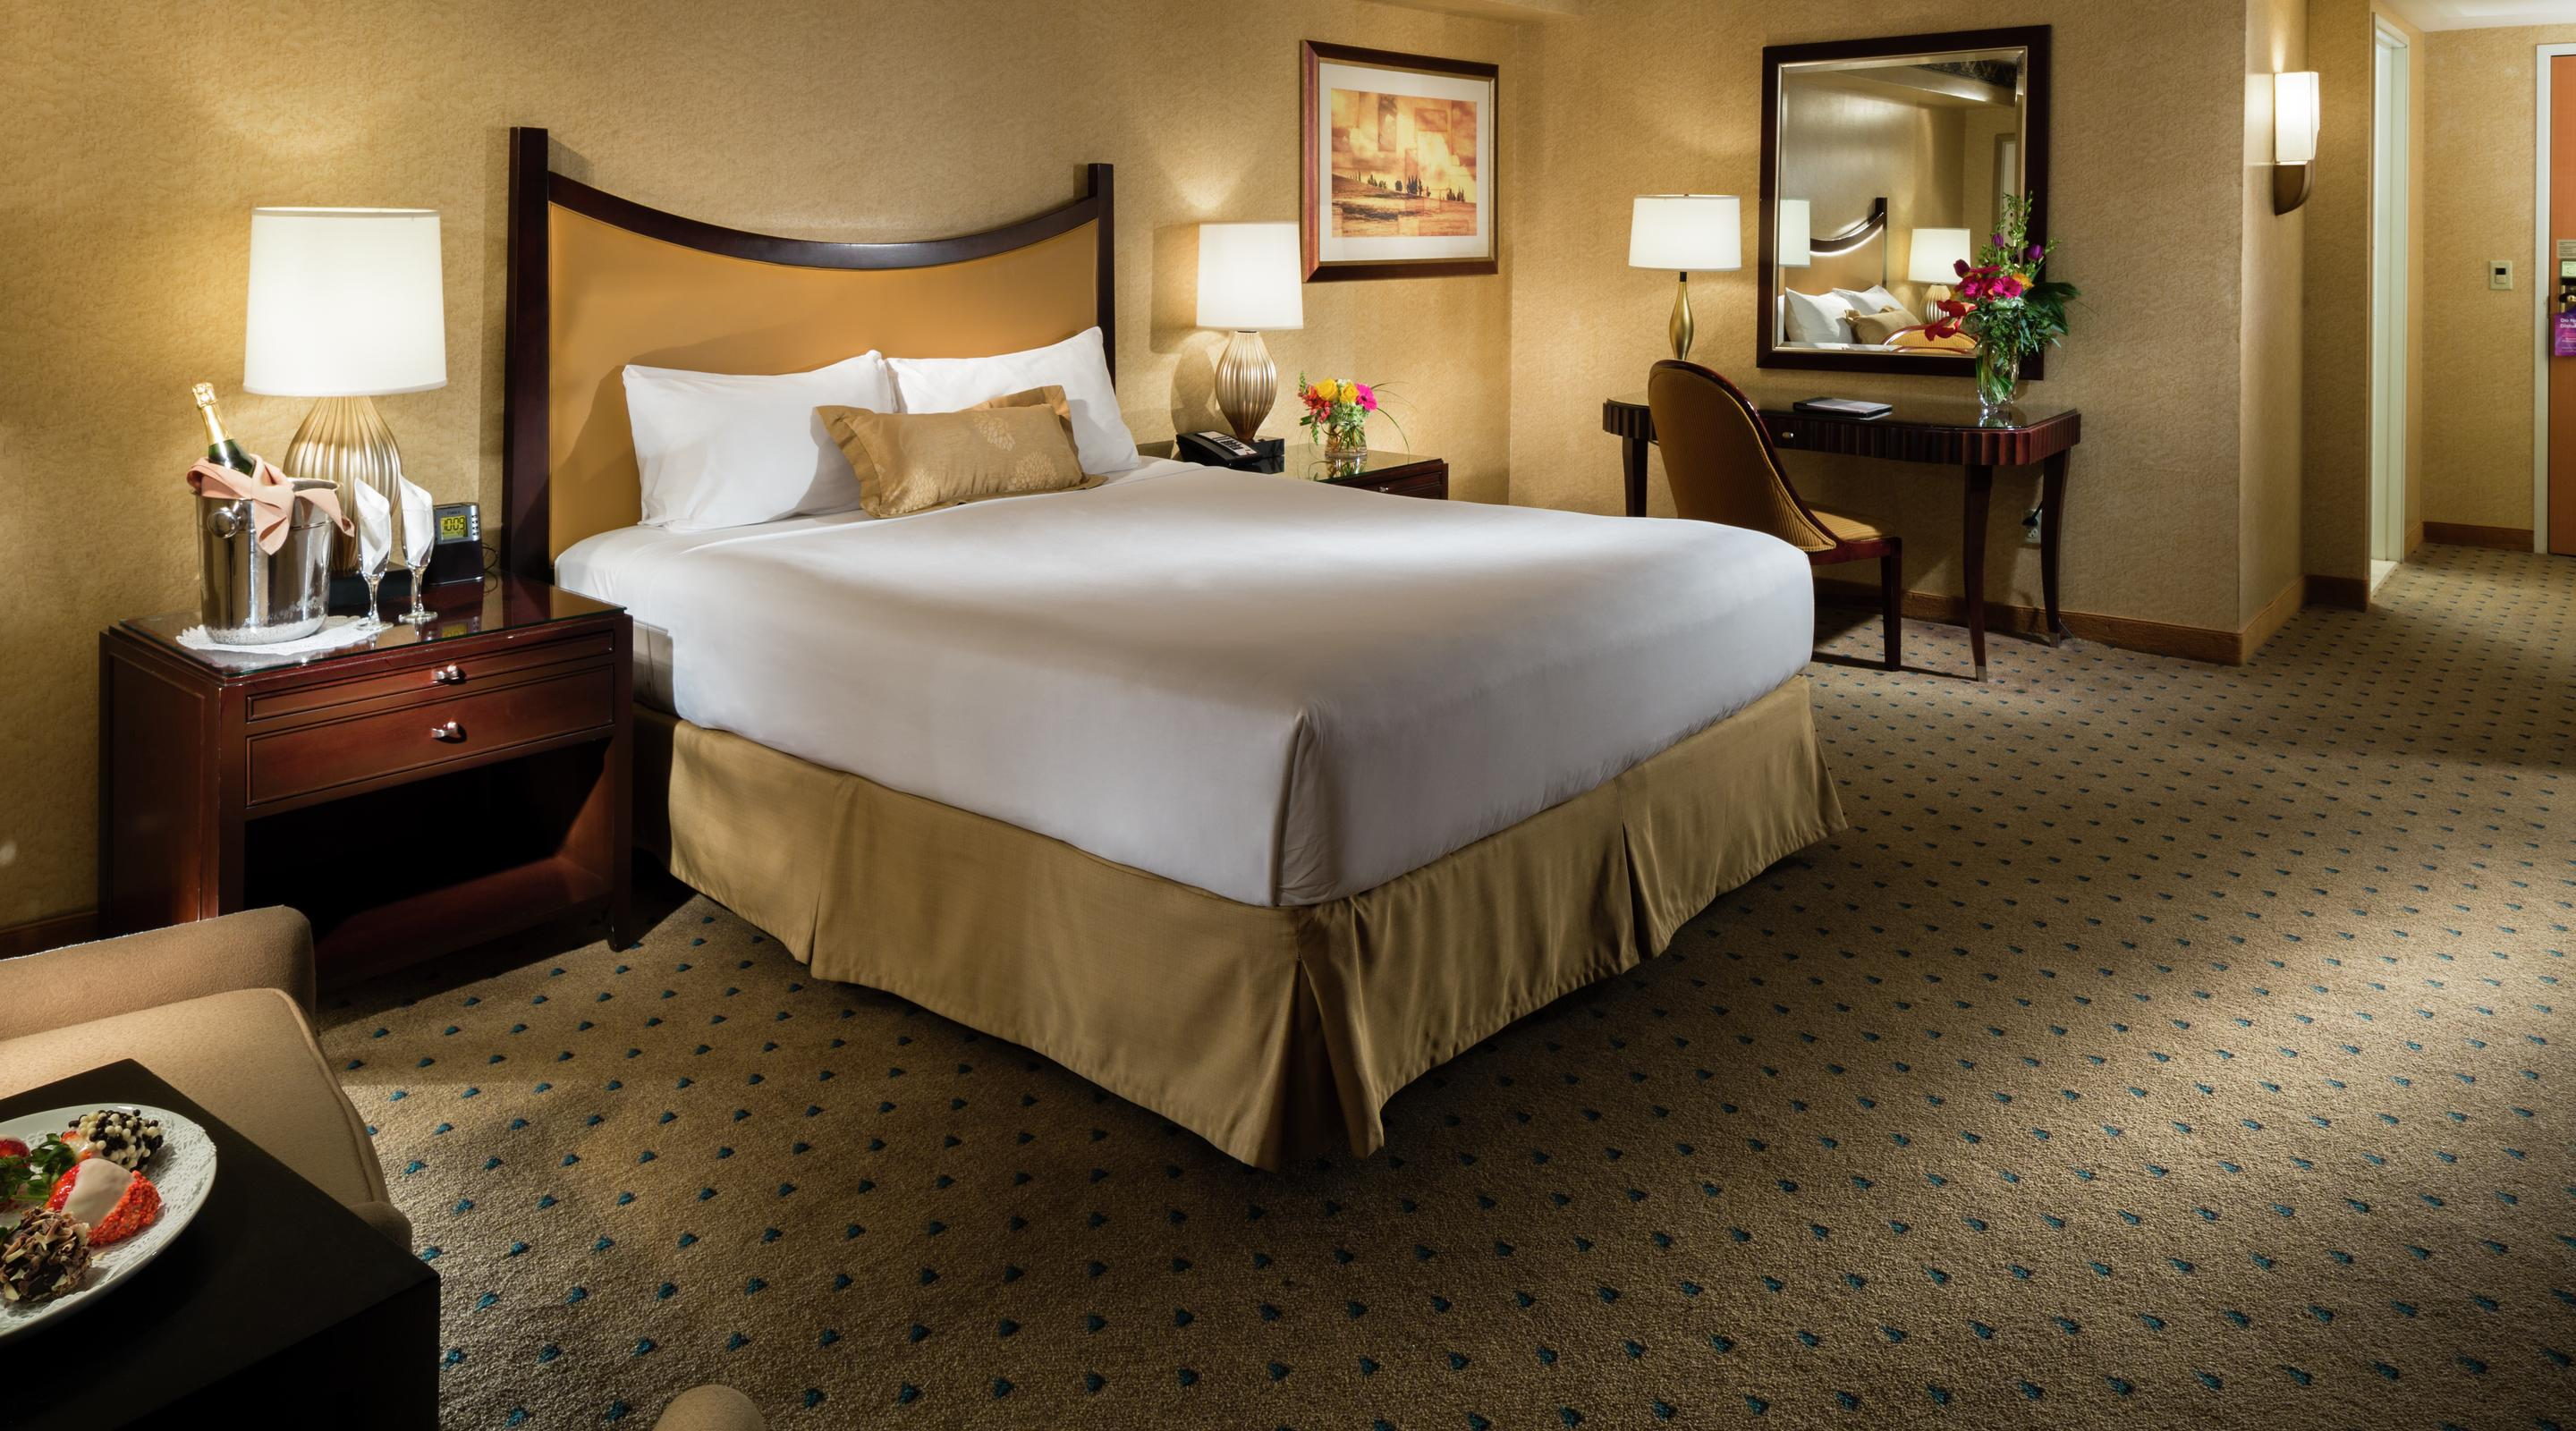 Enjoy all the comfort and conveniences of the  newly upgraded  Madison Avenue King Room set for all your business or pleasure needs.